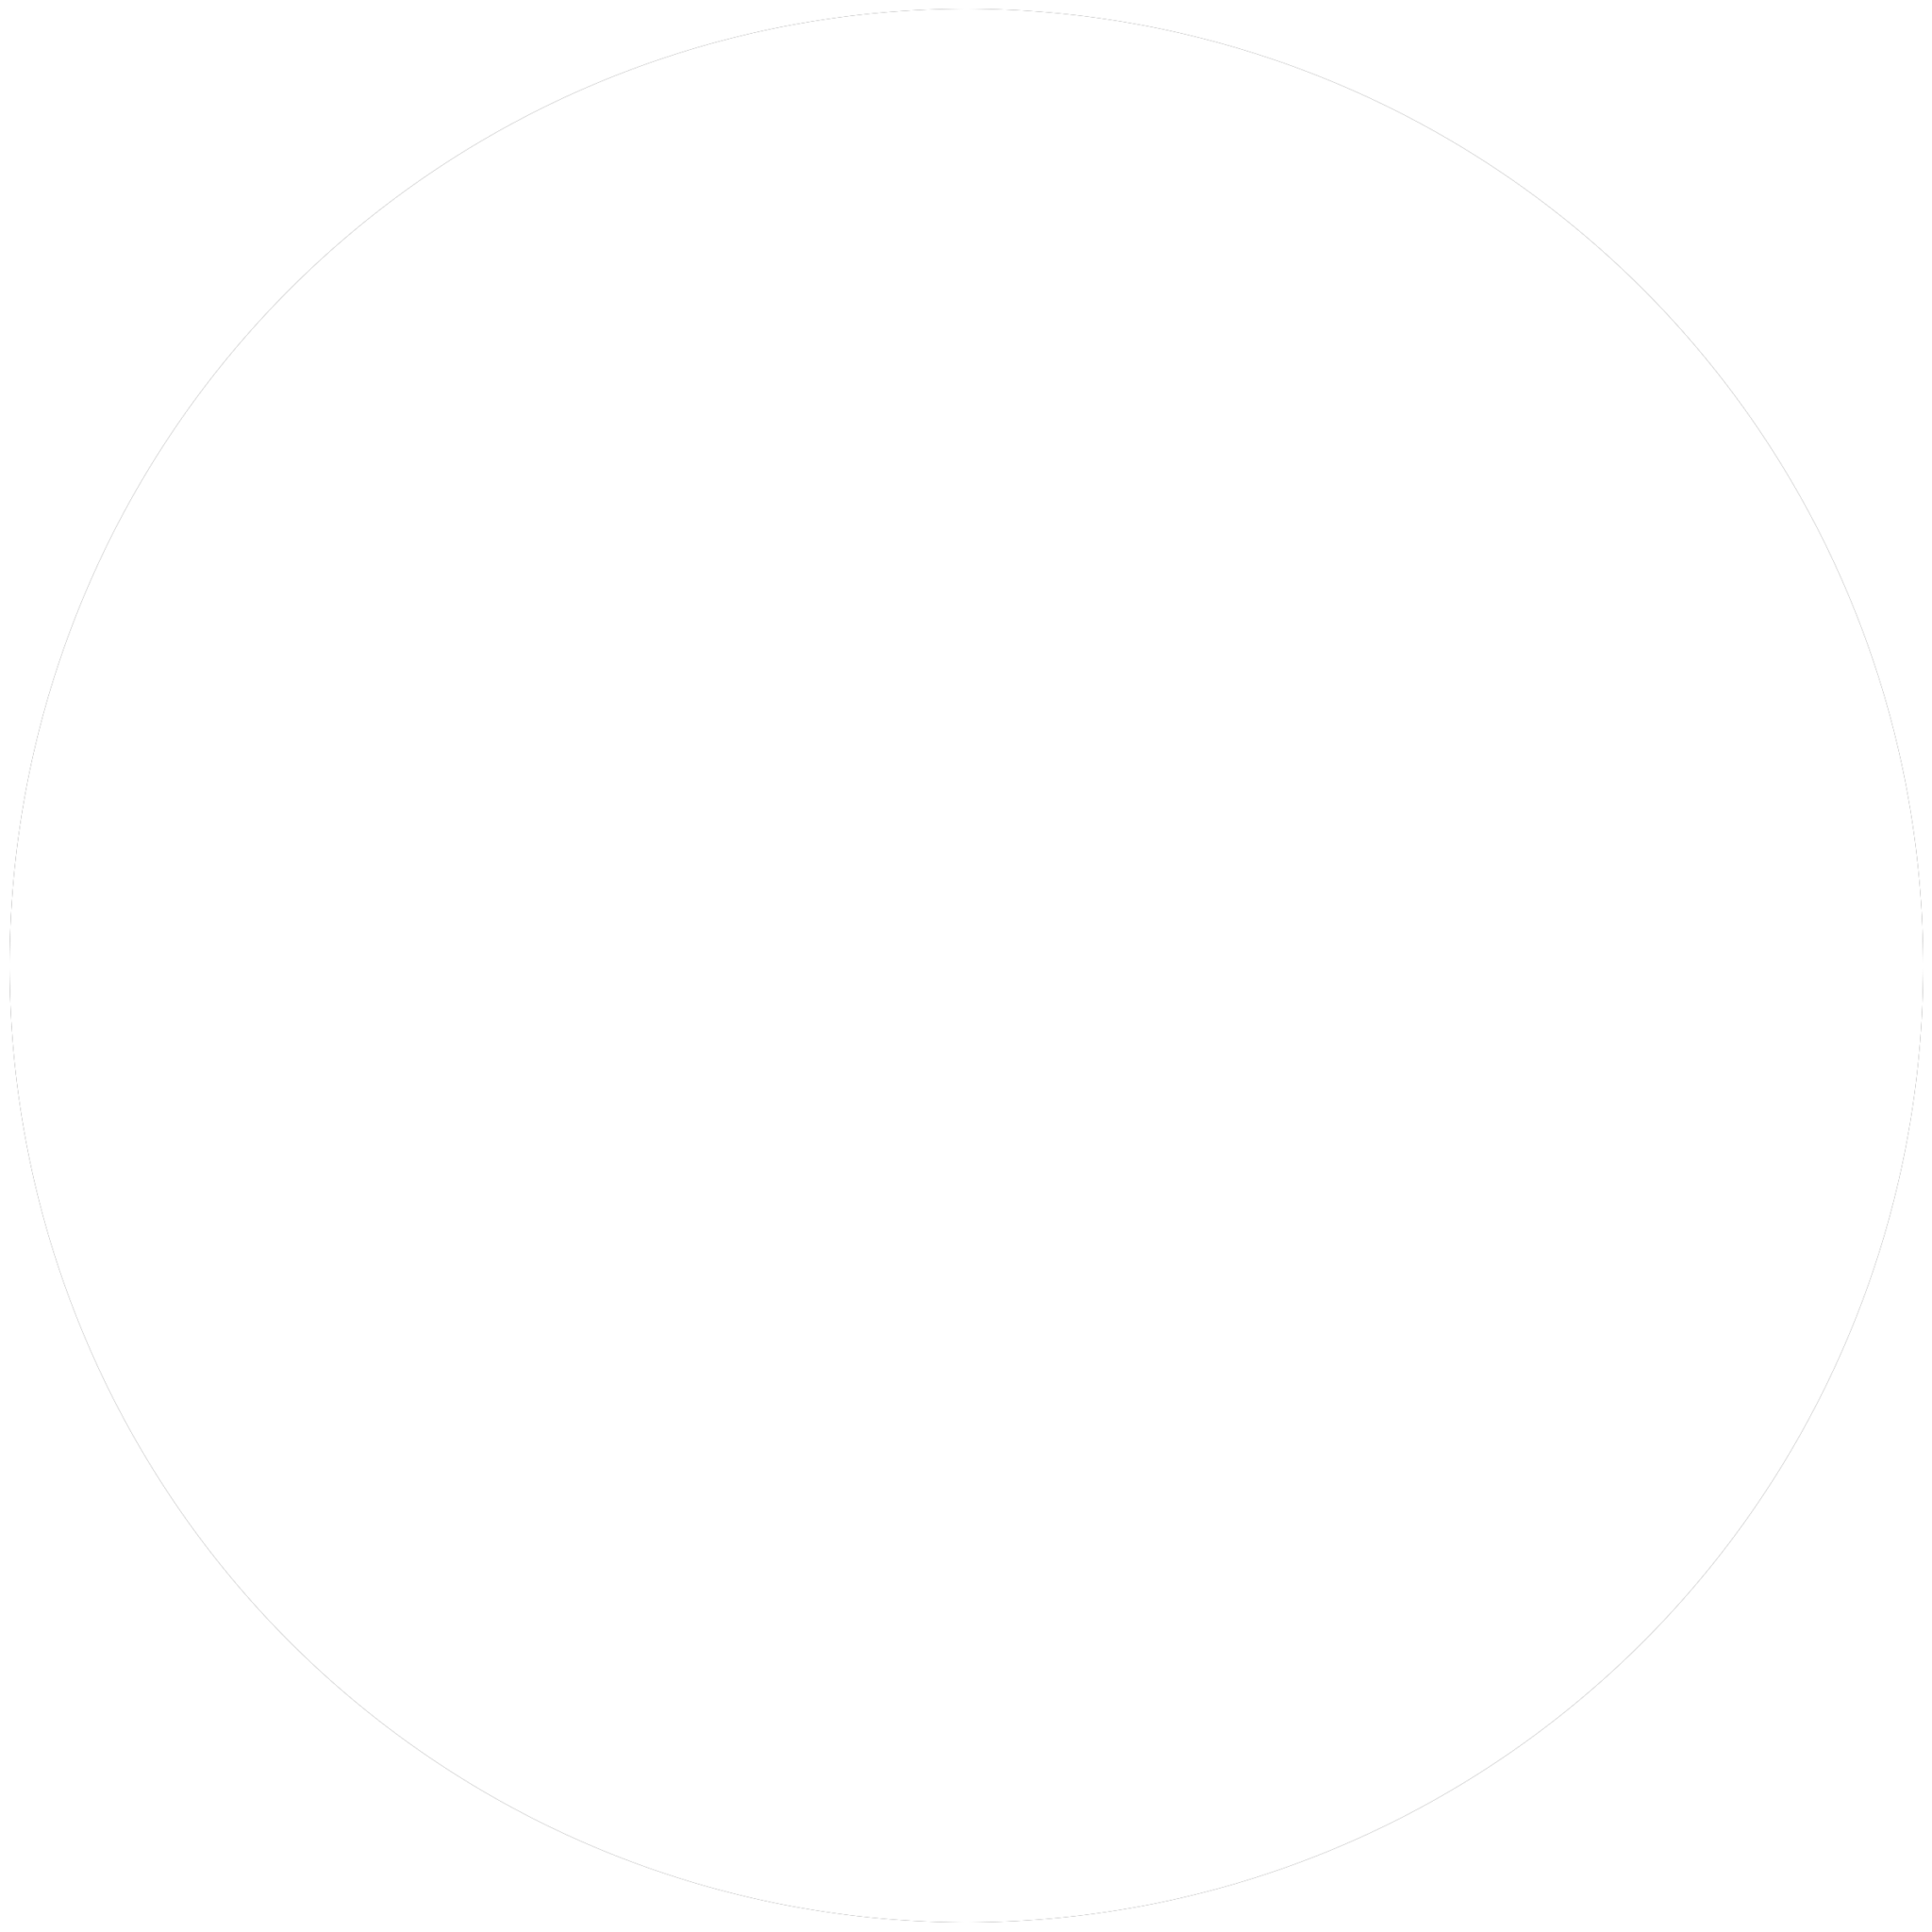 Draft Therapy